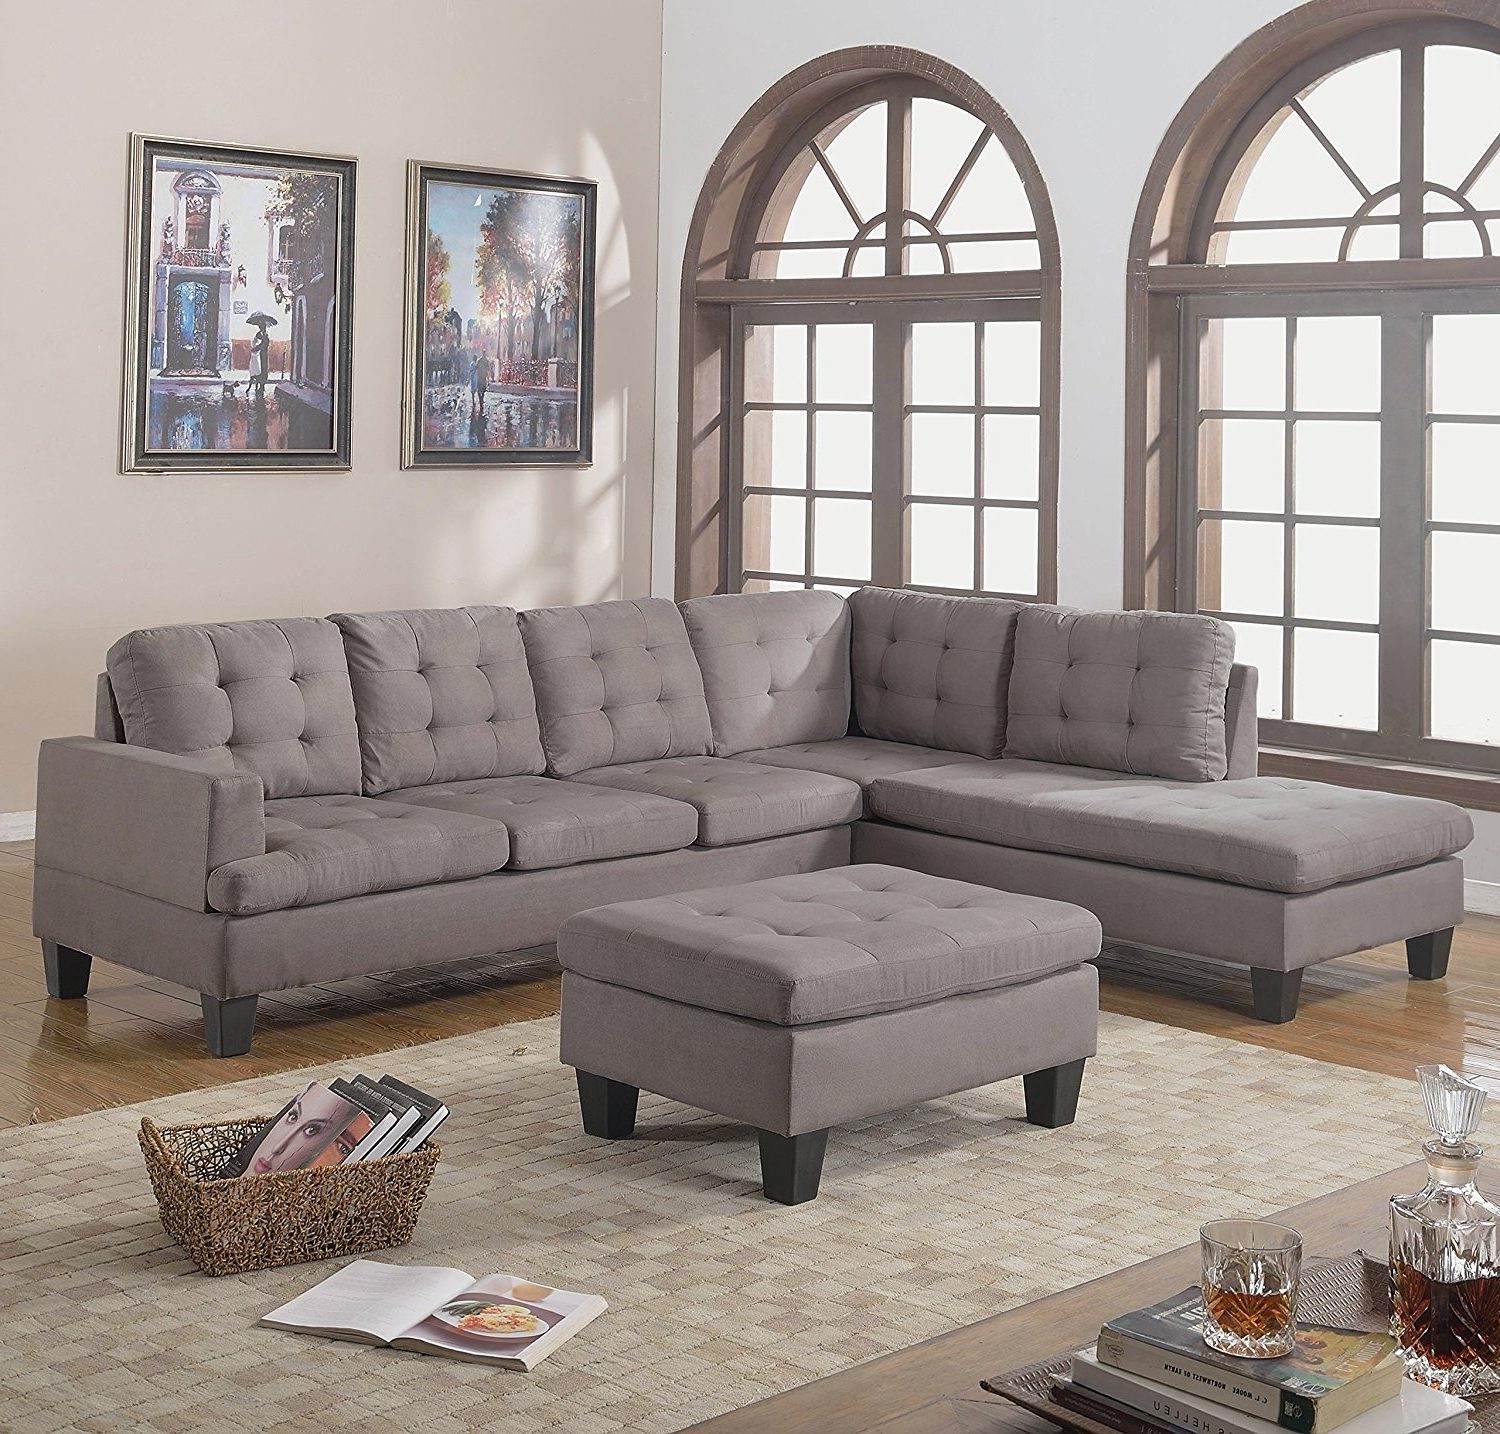 Trendy Light Grey Sectional Sofas With Regard To Amazon: Divano Roma Furniture 3 Piece Reversible Chaise (View 14 of 15)